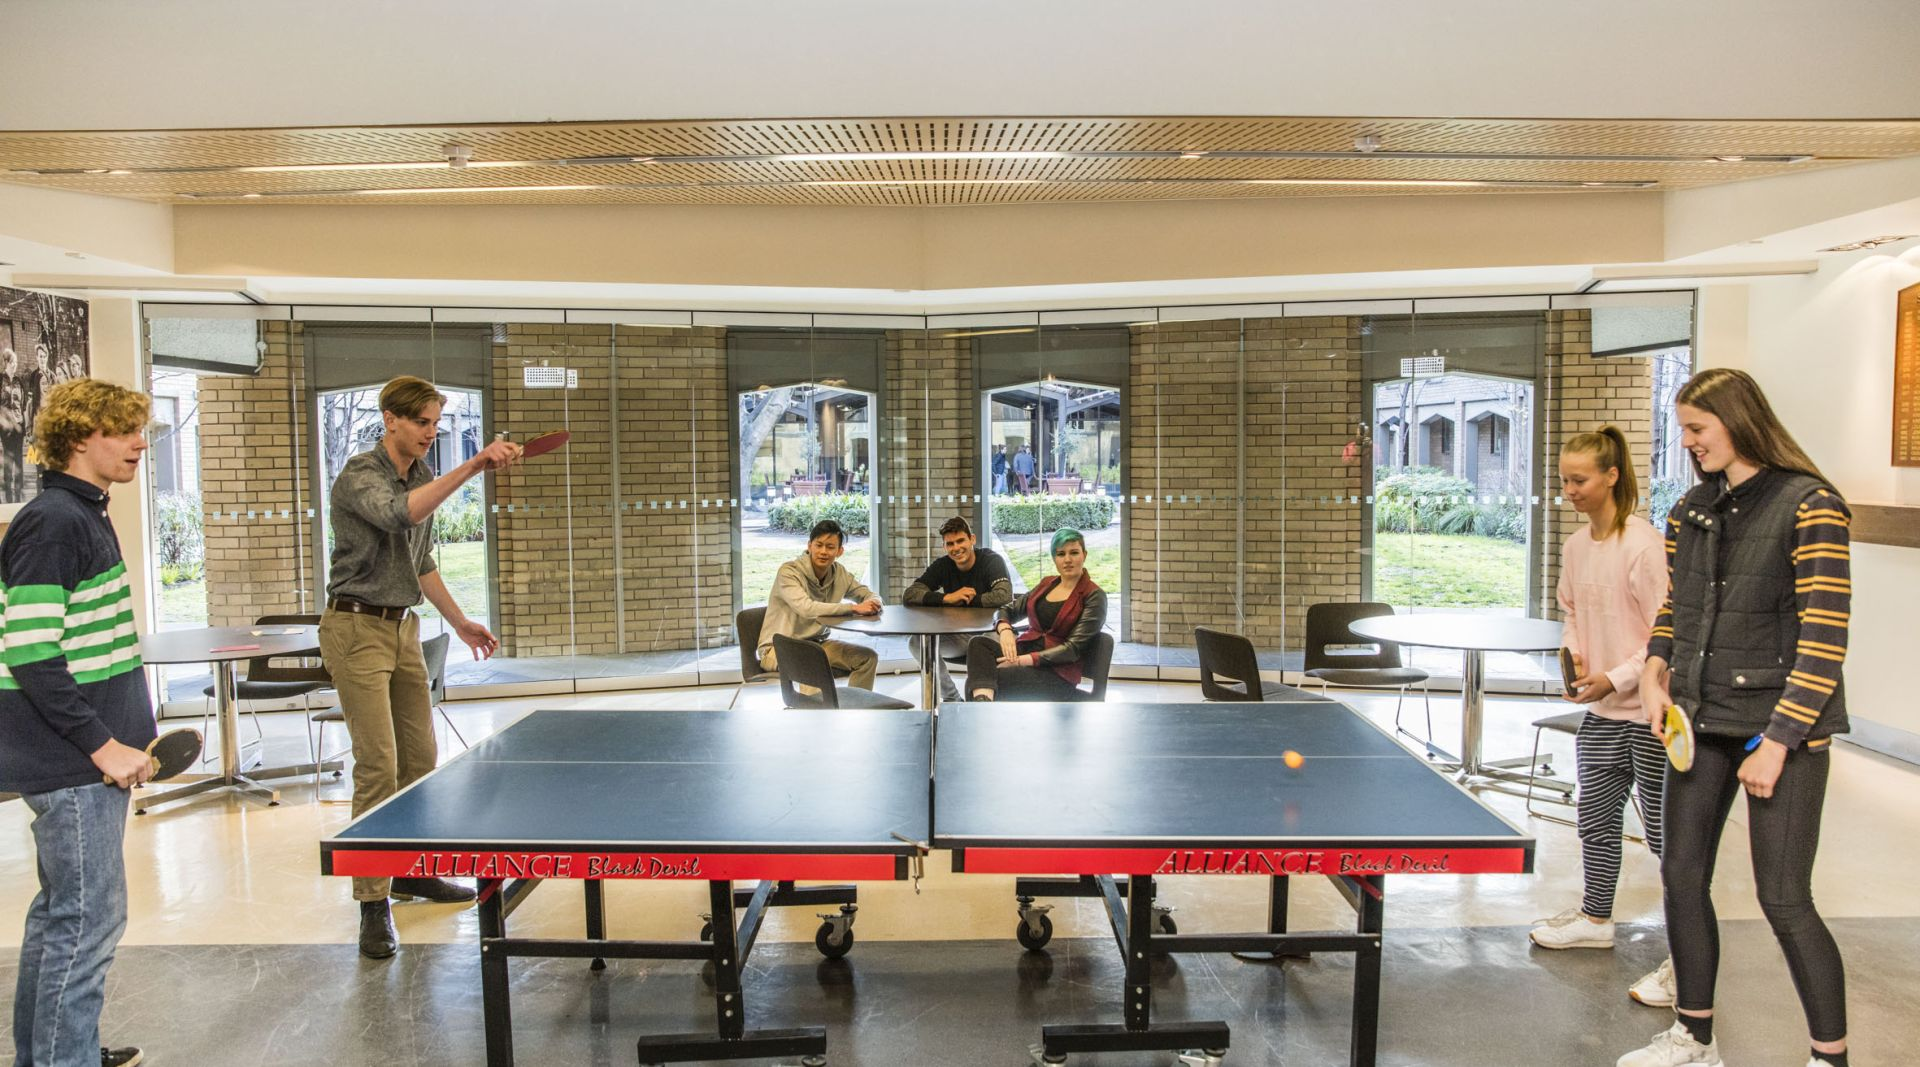 Students playing table tennis